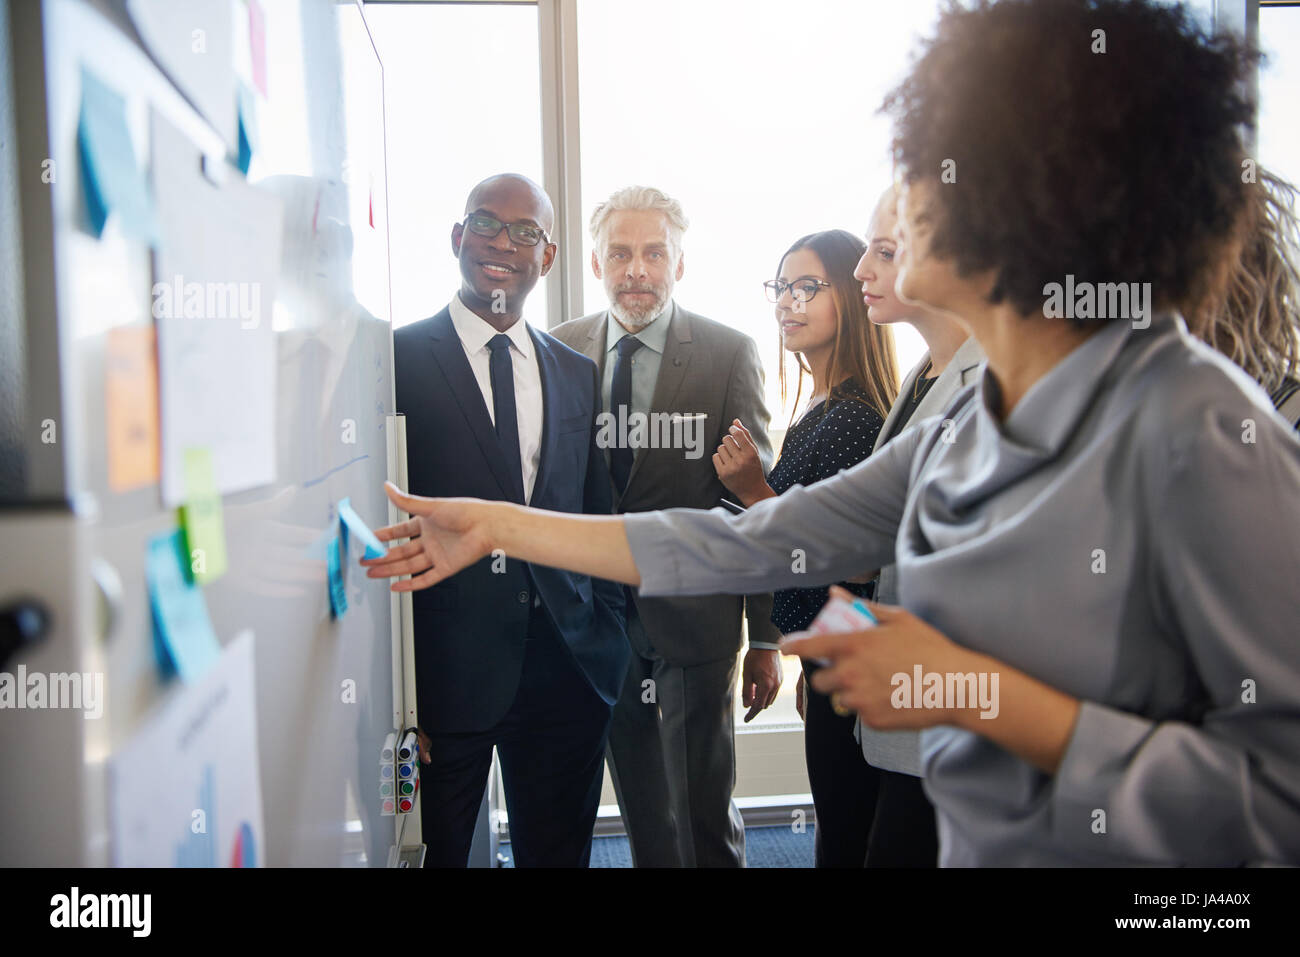 Group of mixed business people having a meeting using a white board in bright office space - Stock Image